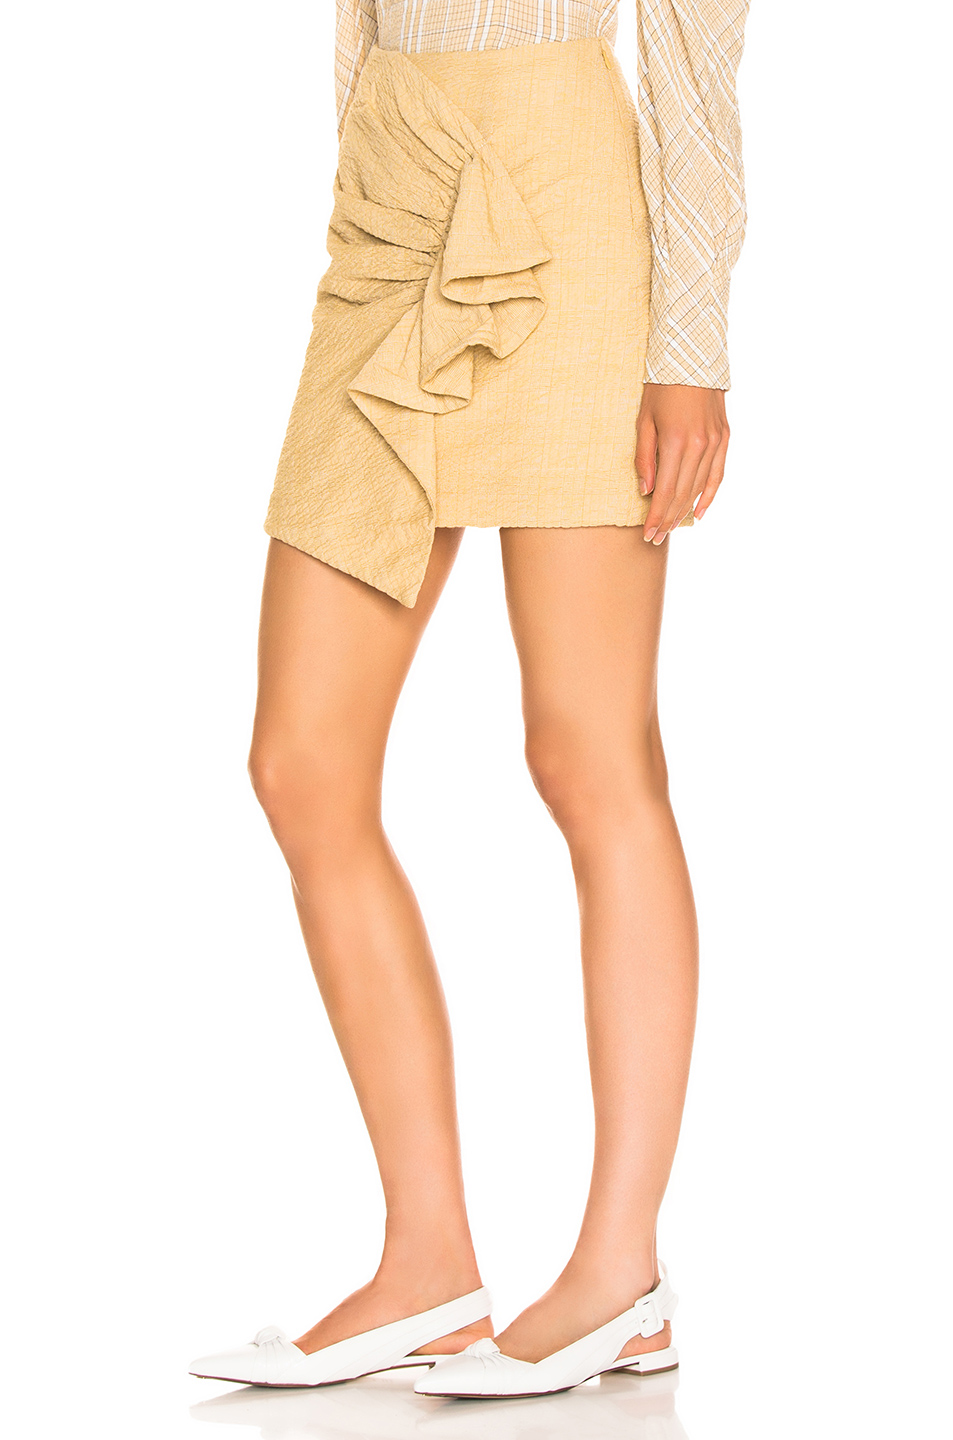 Atoir Golden Years Skirt